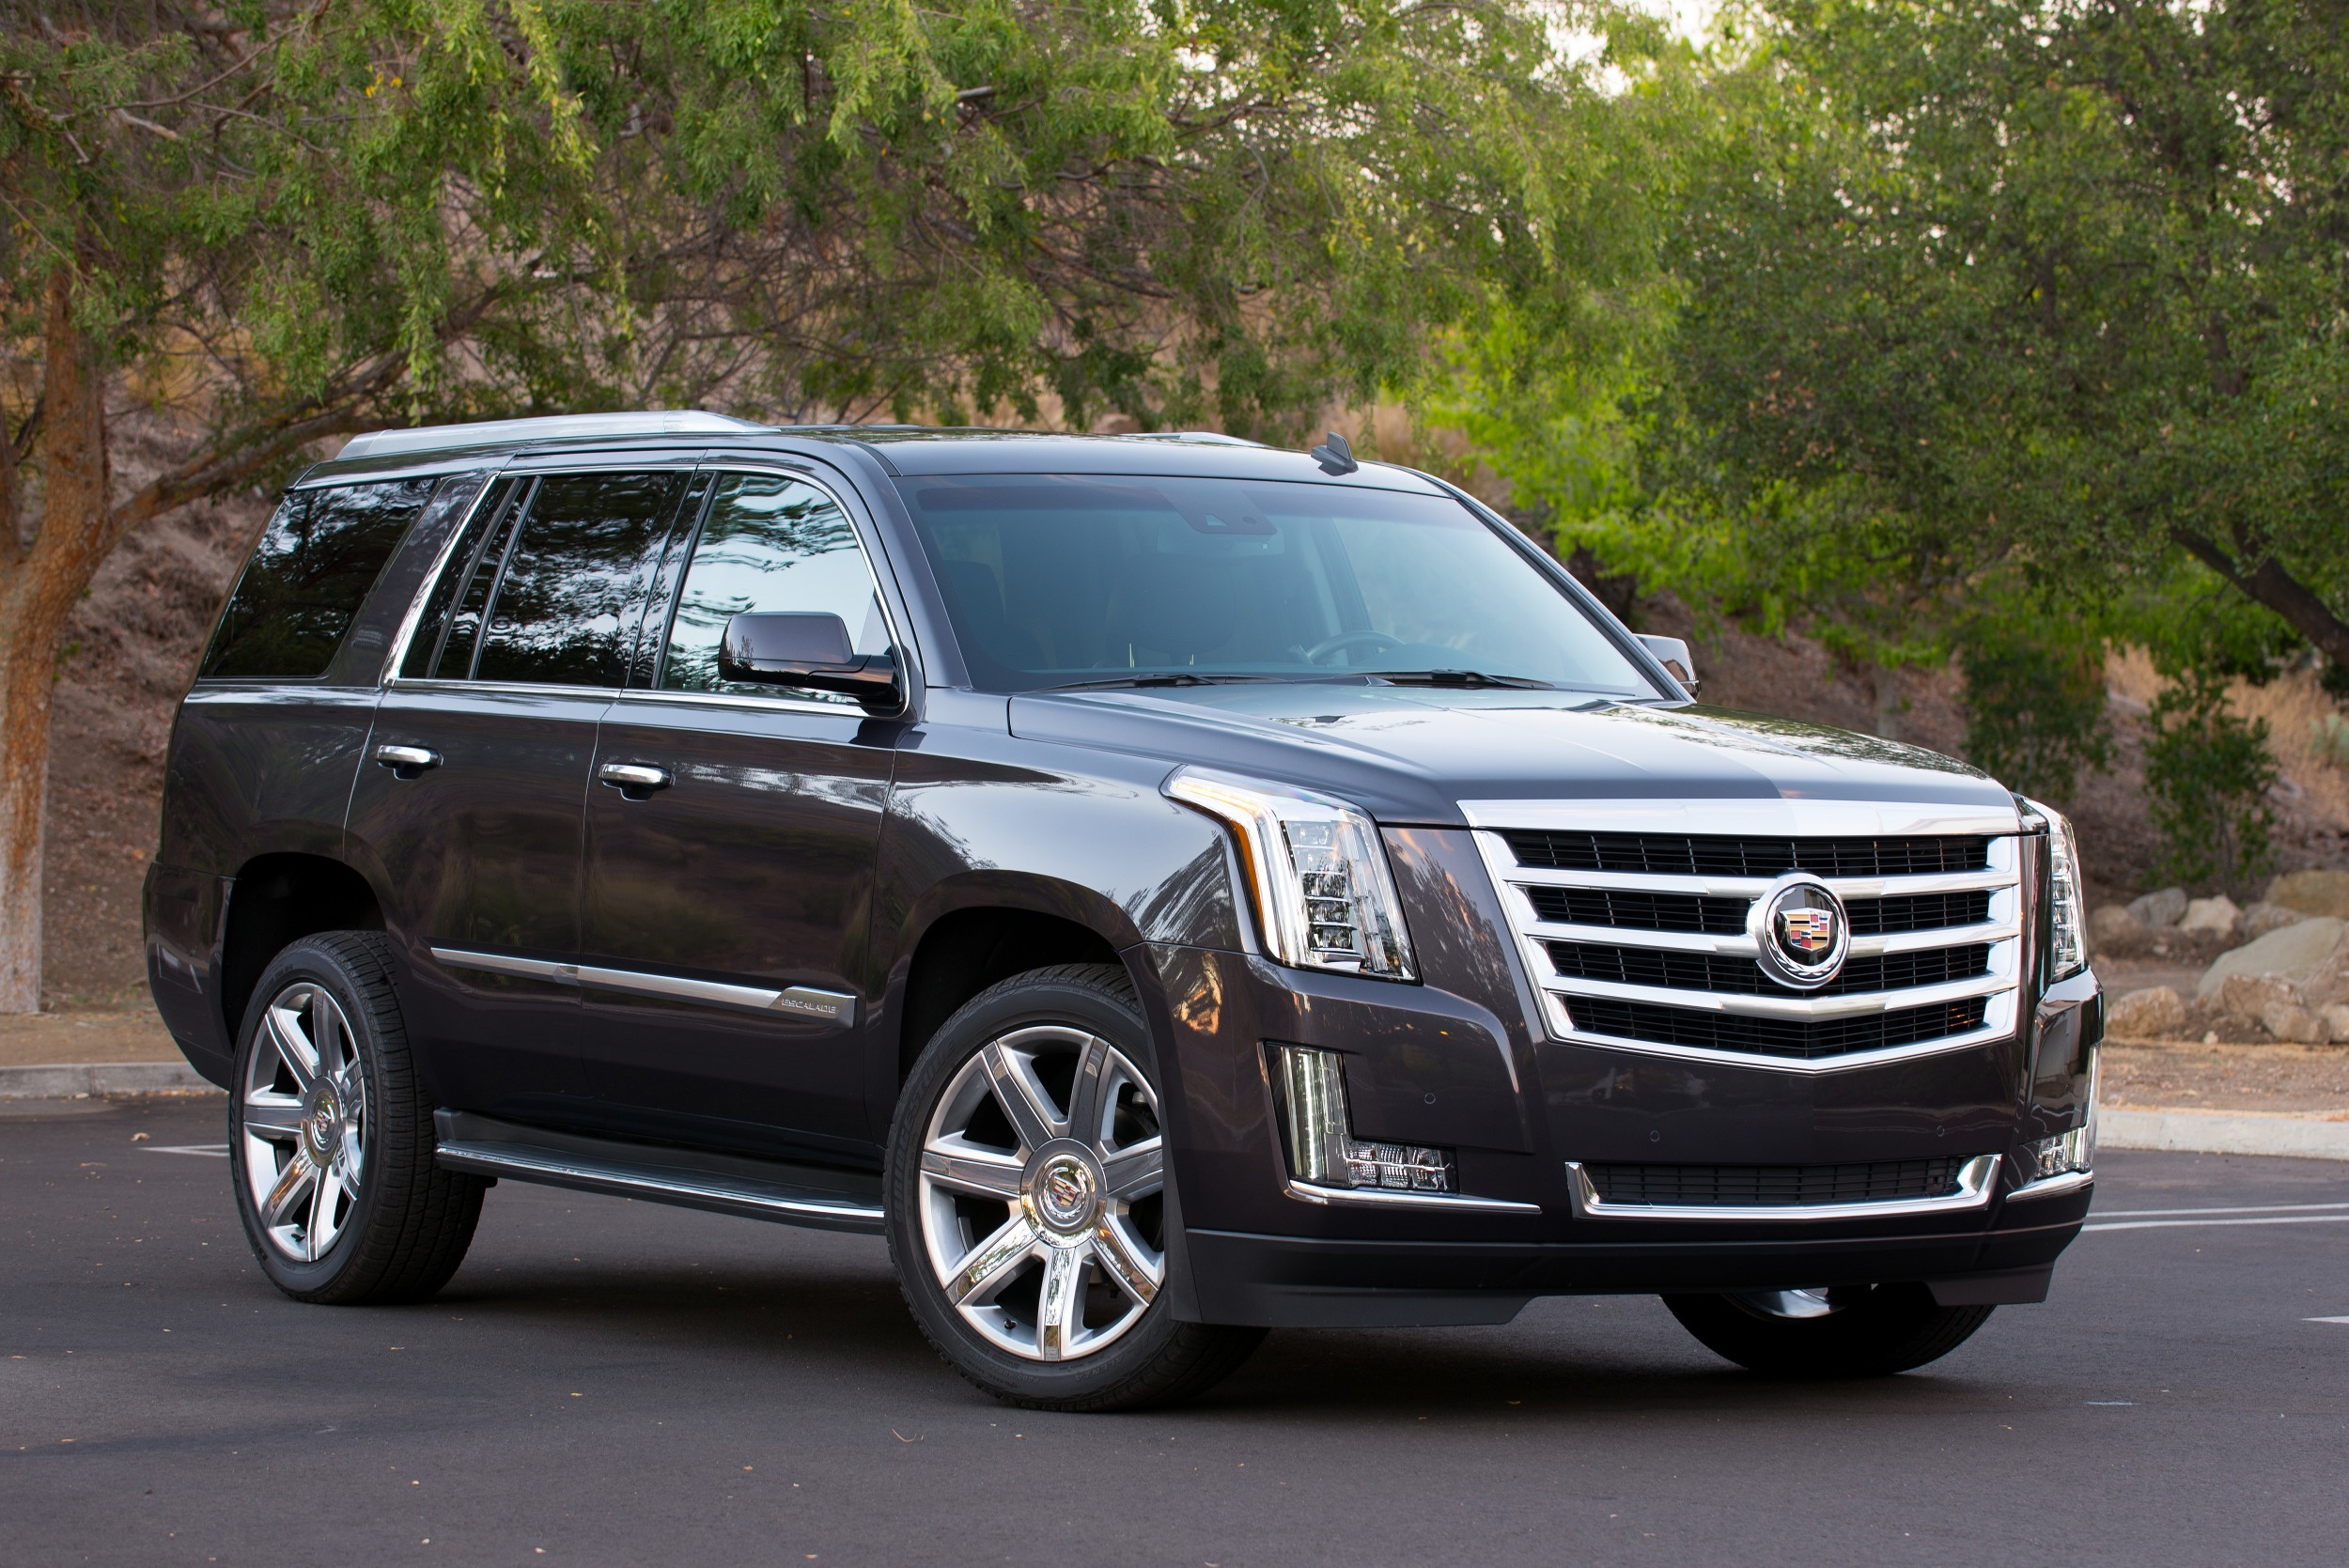 2017 cadillac escalade luxury 4wd for sale cargurus autos post. Black Bedroom Furniture Sets. Home Design Ideas